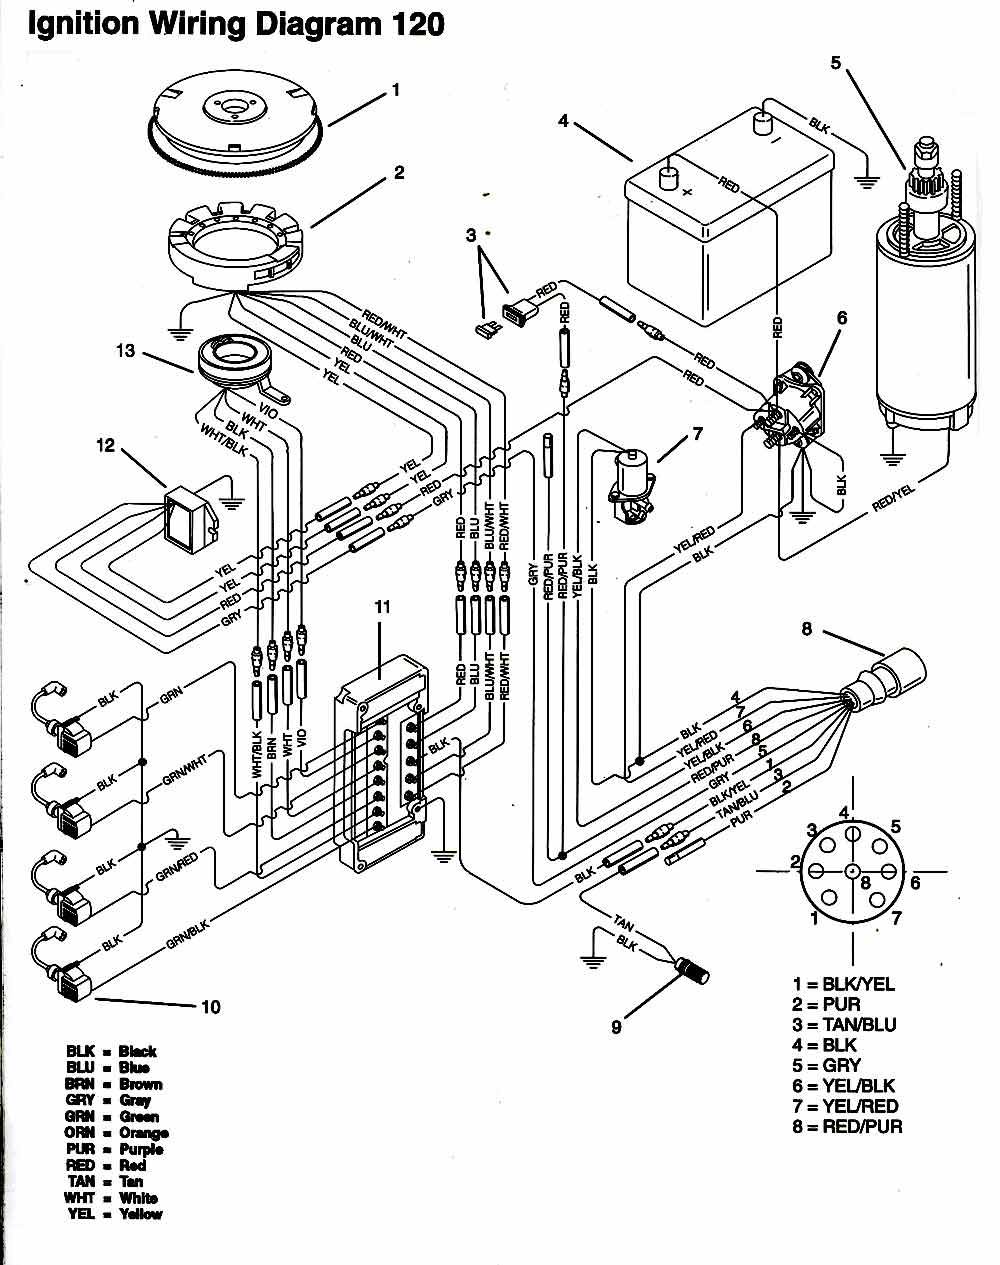 120 Hp Mercruiser Engine Diagram - Wiring Diagrams Long Old Mercruiser Coil Wiring Diagram on mercruiser ignition coil, mercruiser coil wire, mercruiser boat wiring diagrams, mercruiser distributor diagram, mercruiser alpha one outdrive parts diagram, 350 chevy engine wiring diagram, mercruiser 5.7 diagram, mercruiser ignition diagram, mercruiser starter diagram, mopar neutral safety switch wiring diagram, mercruiser coil sae j1171, mercury ignition switch wiring diagram, mercruiser fuel pump diagram, mercruiser 5.0 mpi wiring,